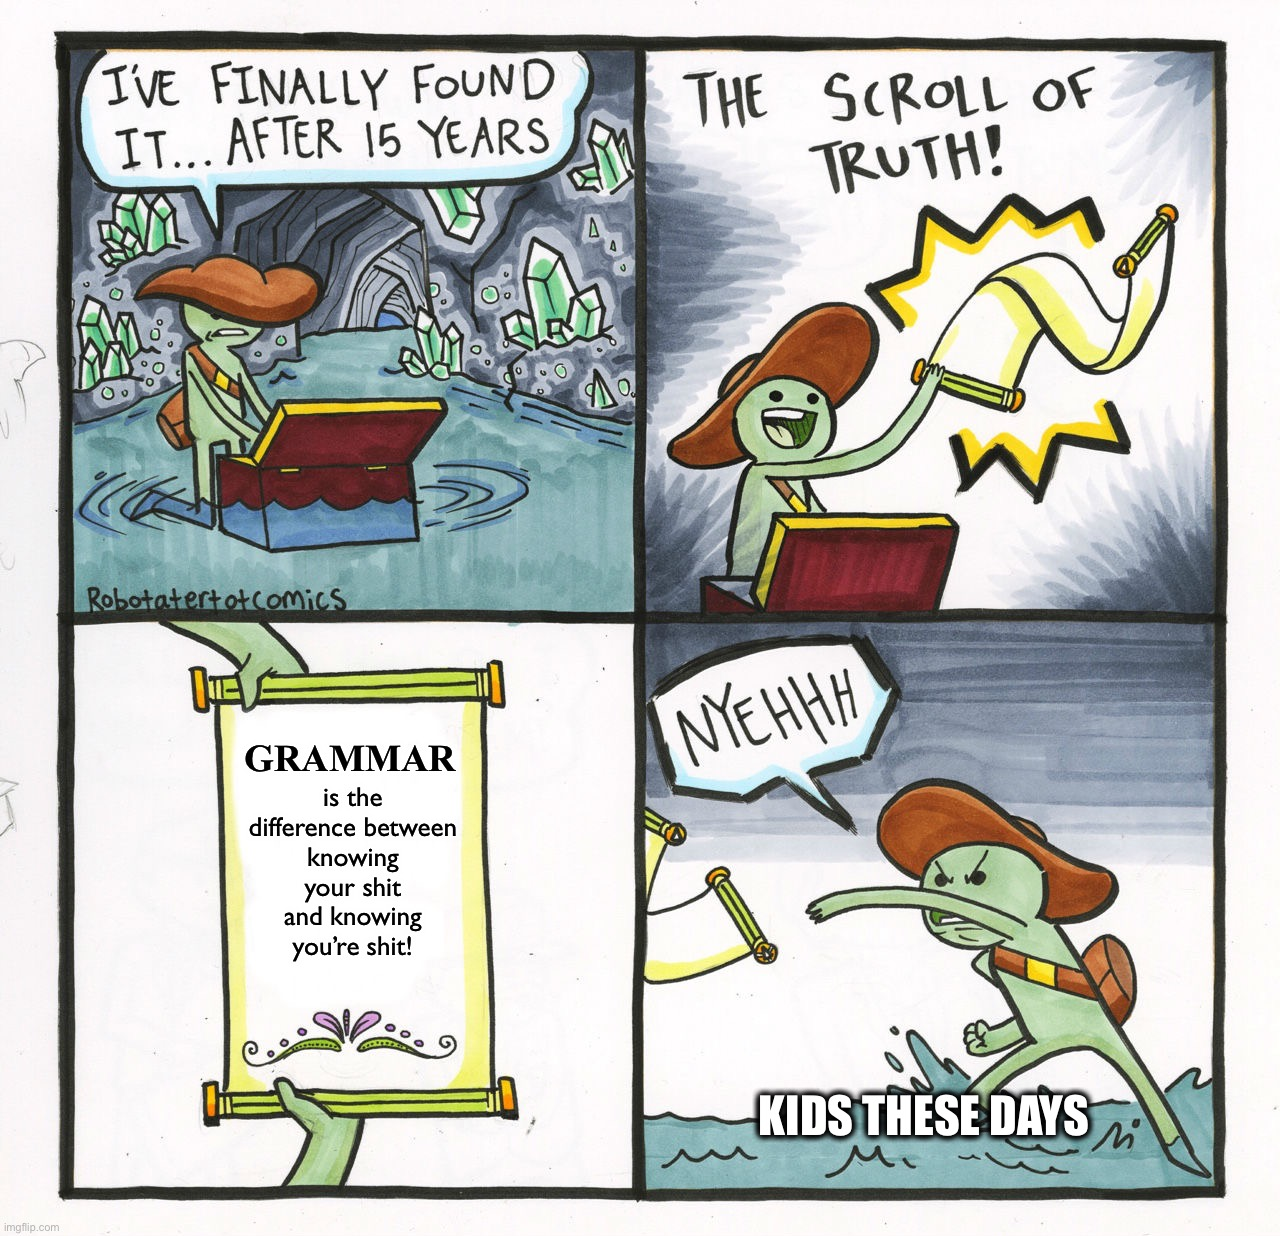 The Scroll Of Truth Meme |  GRAMMAR; is the difference between knowing your shit and knowing you're shit! KIDS THESE DAYS | image tagged in memes,the scroll of truth,bad grammar and spelling memes,kids these days,true story,funny memes | made w/ Imgflip meme maker